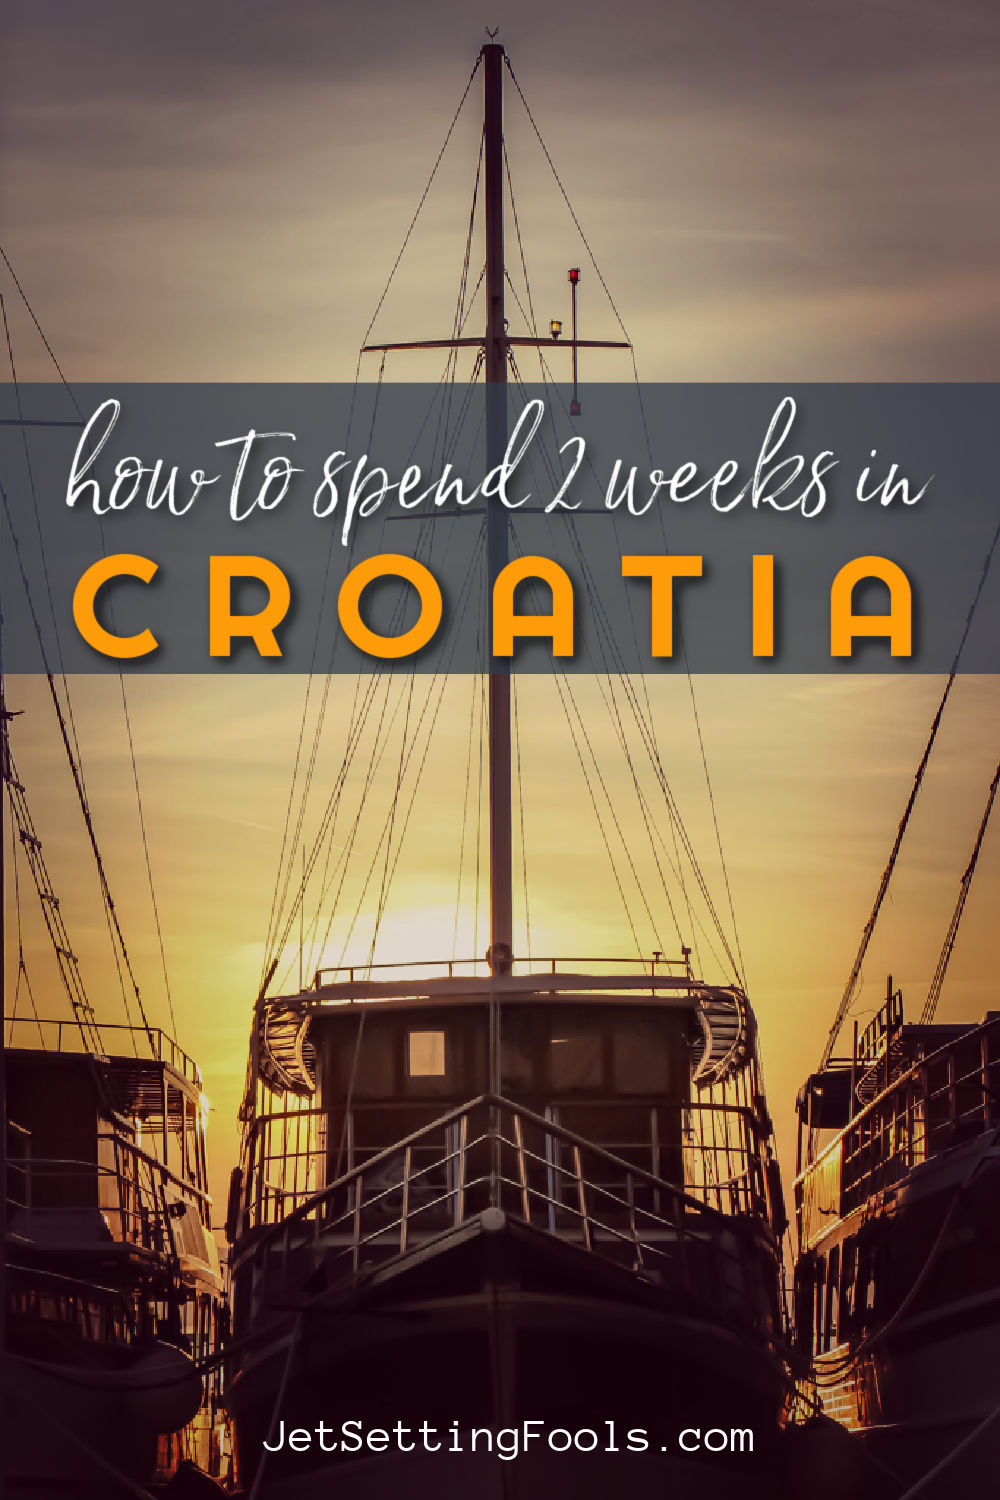 How To Spend 2 Weeks in Croatia by JetSettingFools.com